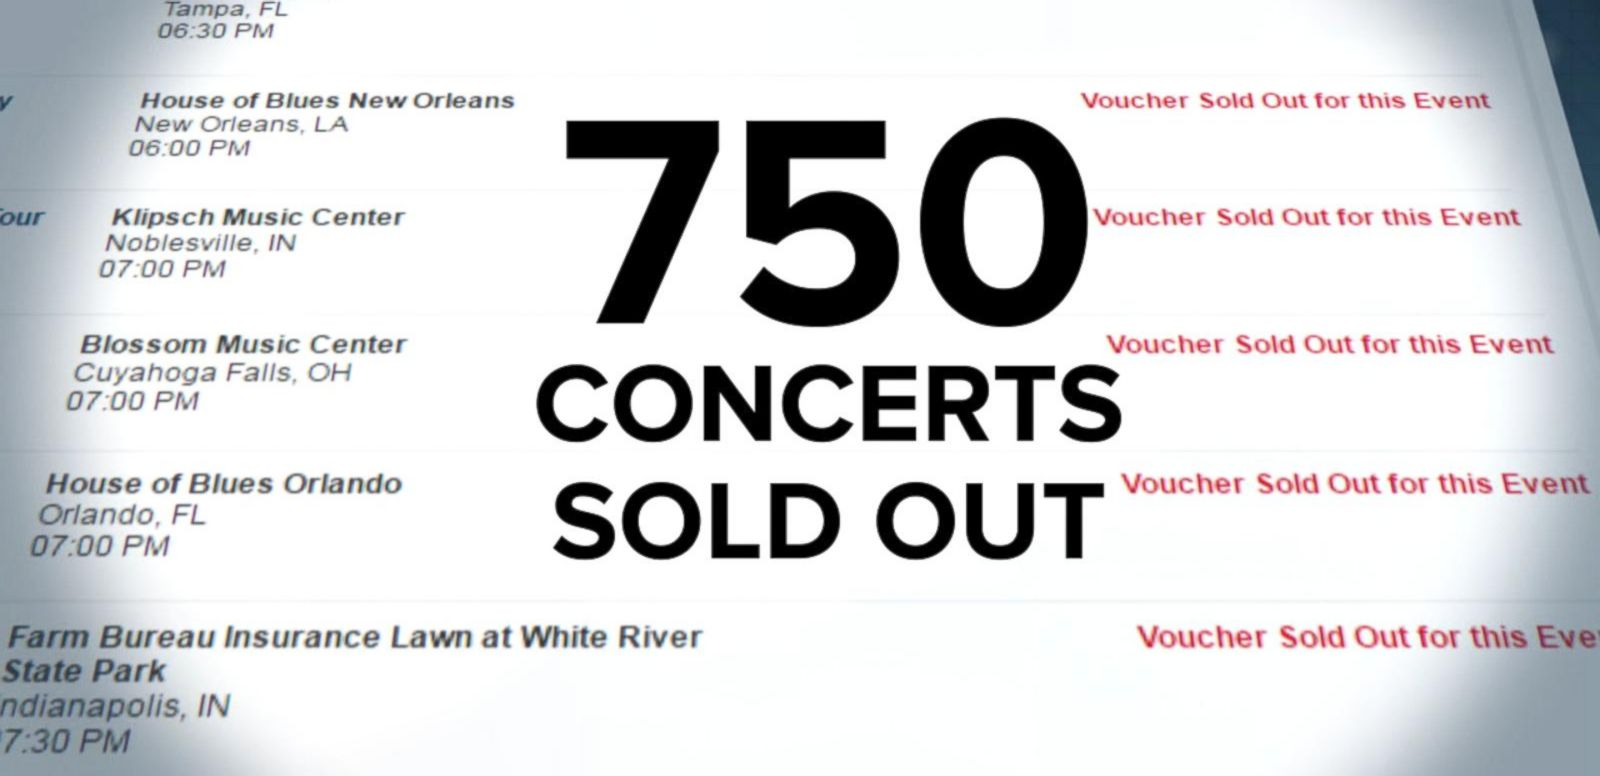 VIDEO: Ticketmaster Hits a Bad Note With Music Fans